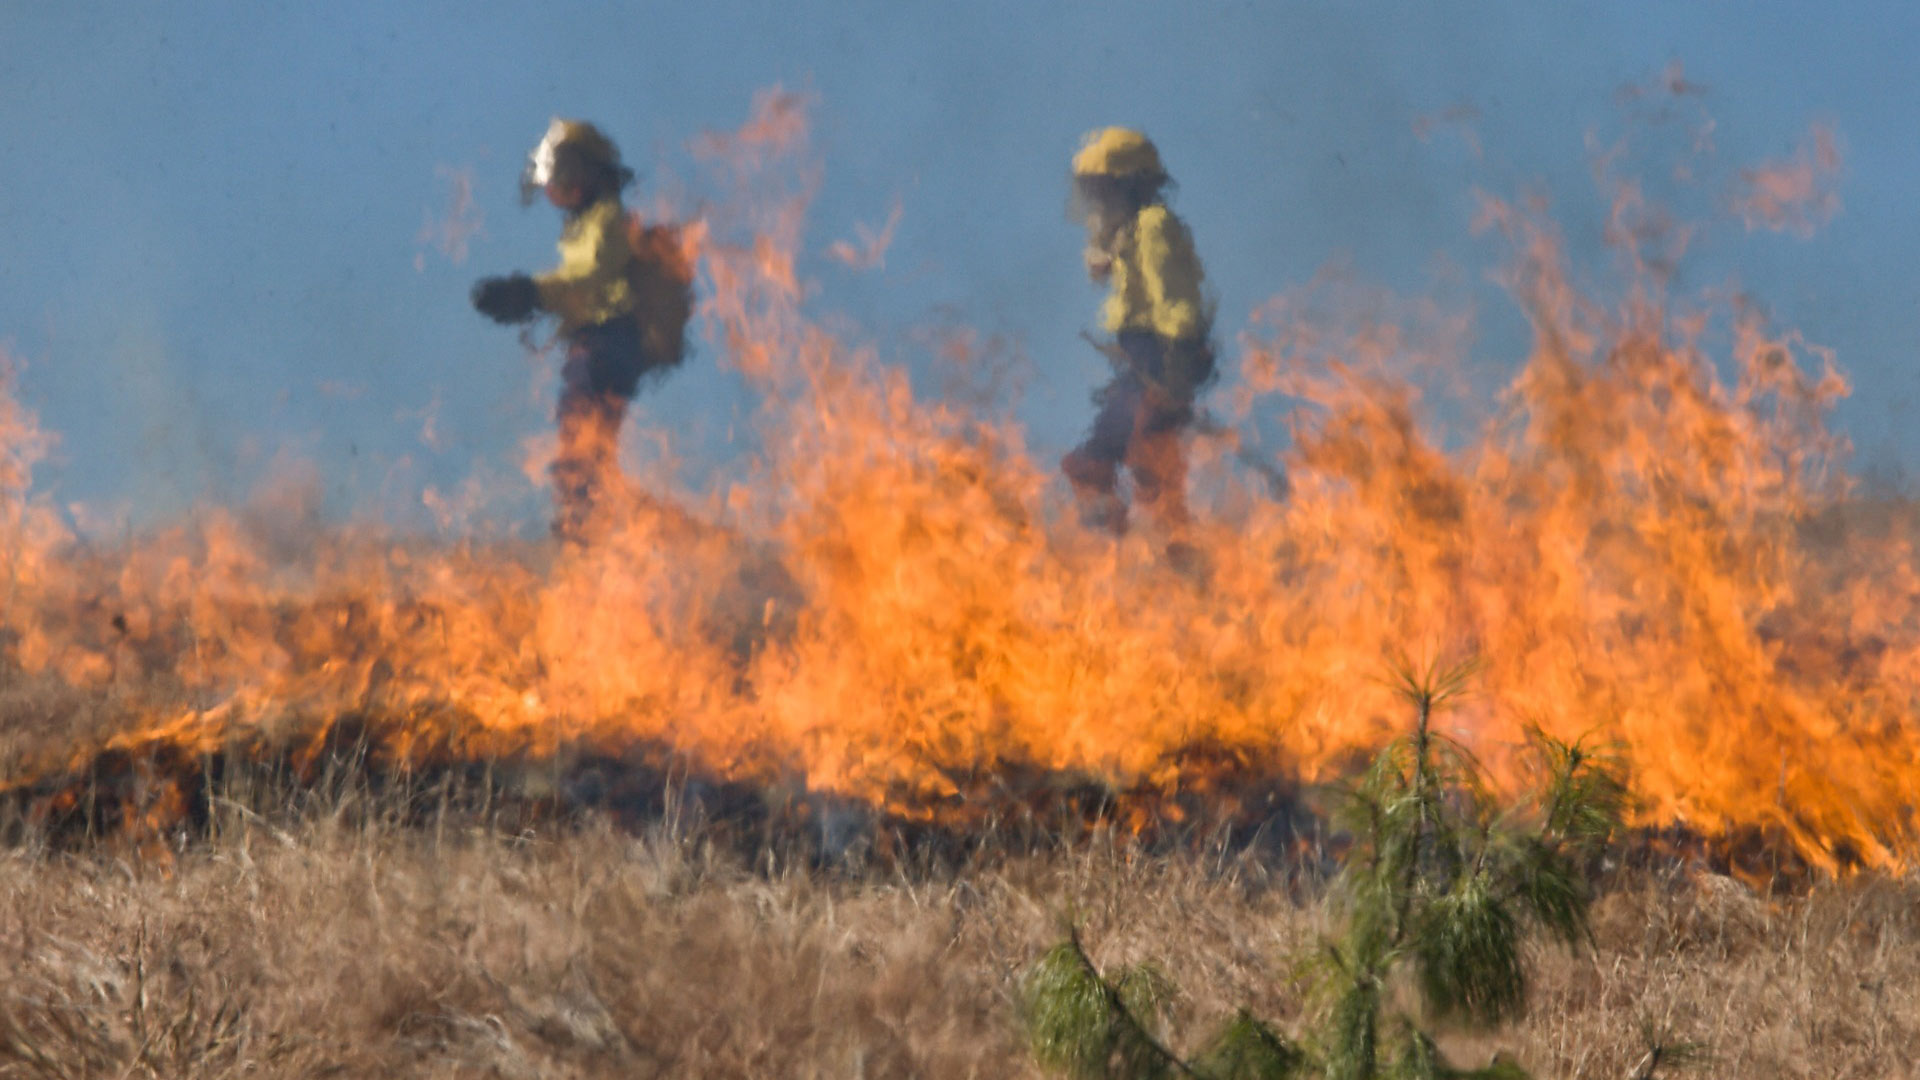 Firefighters monitor a preventive burn.